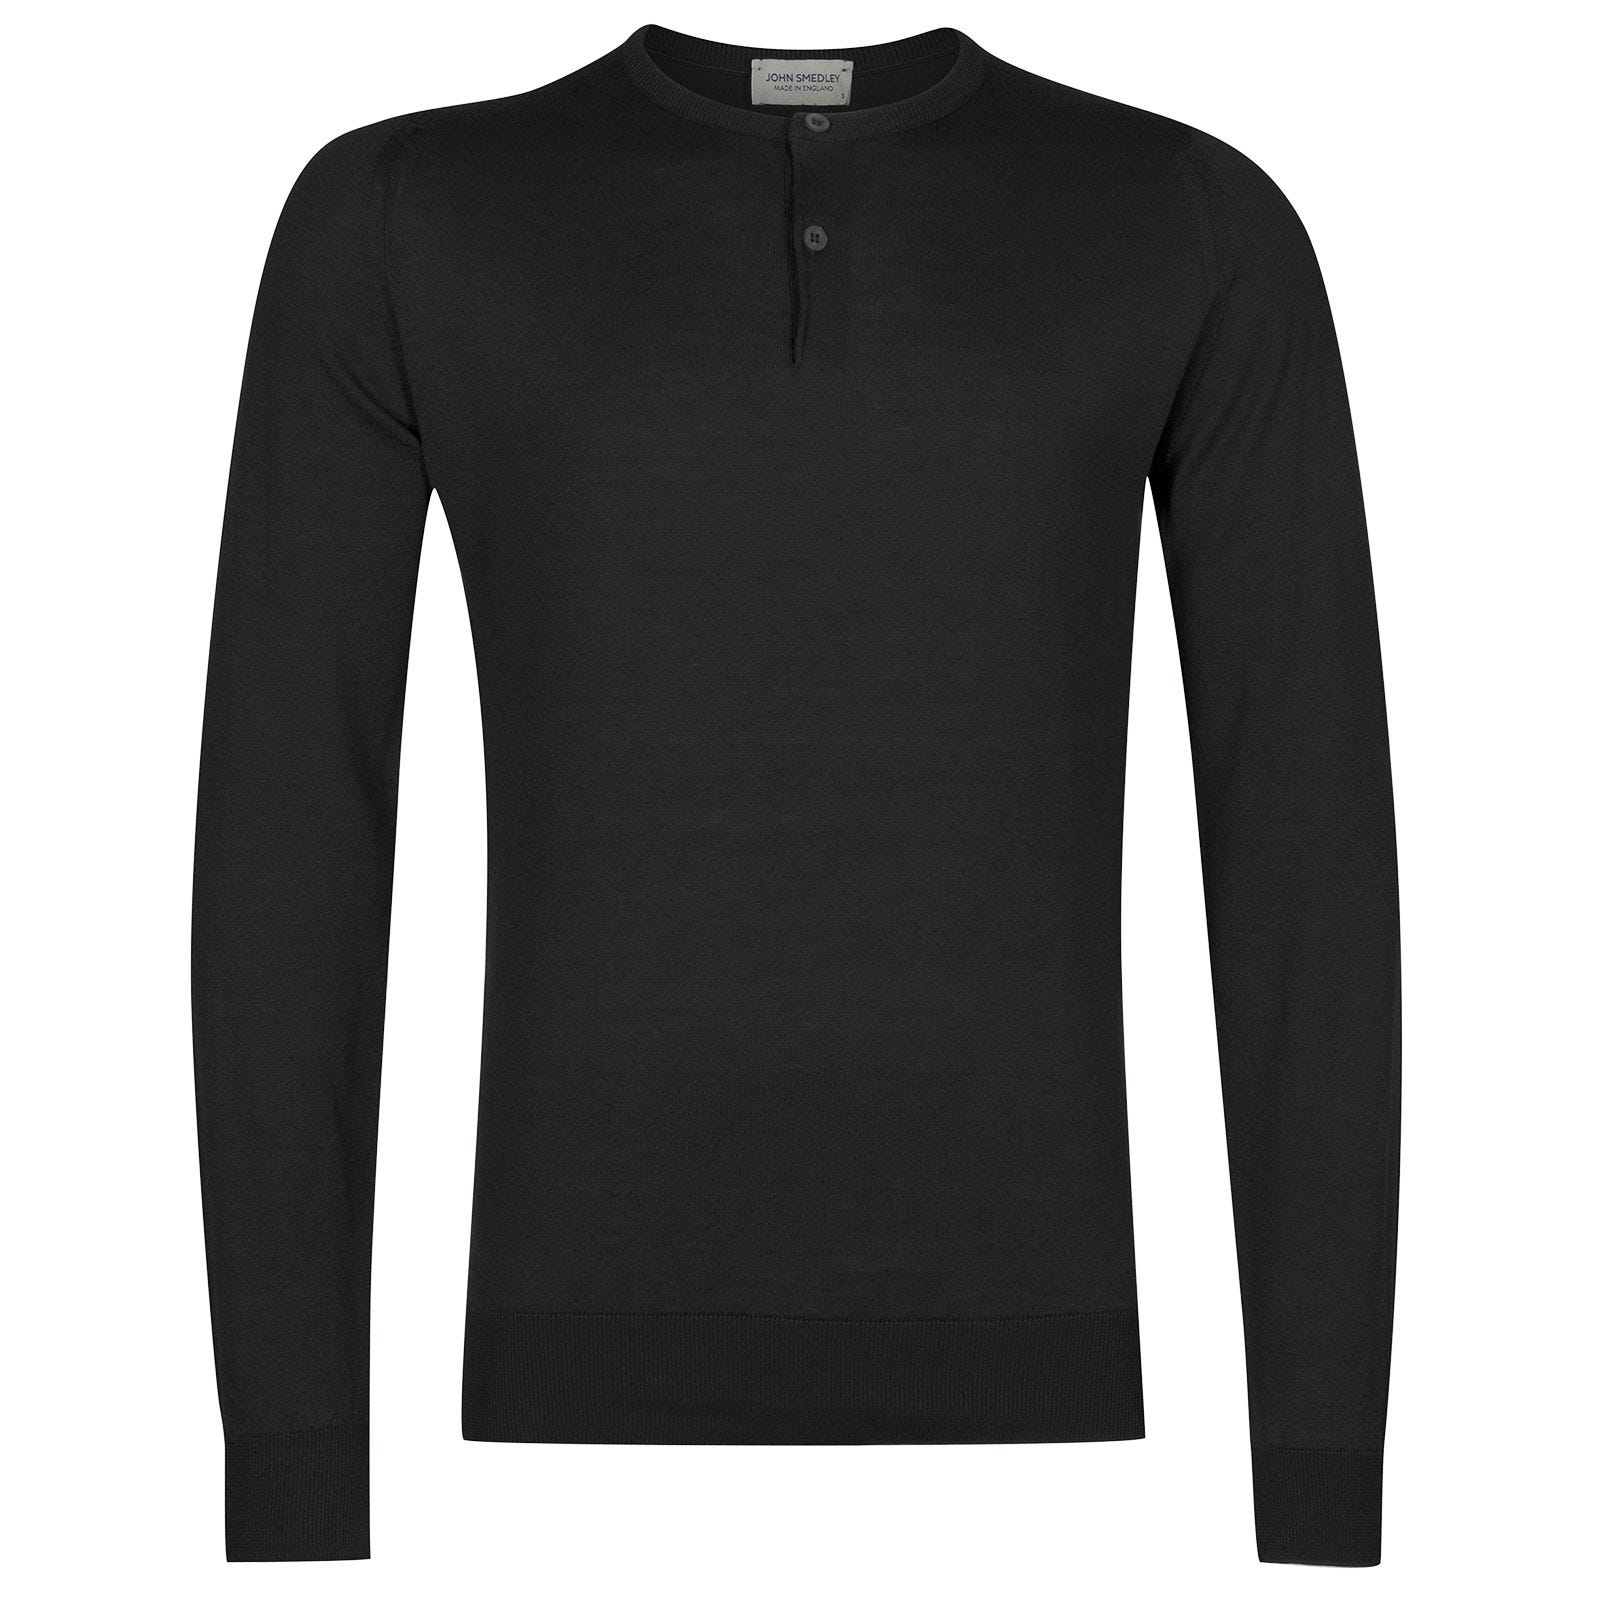 John Smedley Wembury Sea Island Cotton Pullover in Black-L